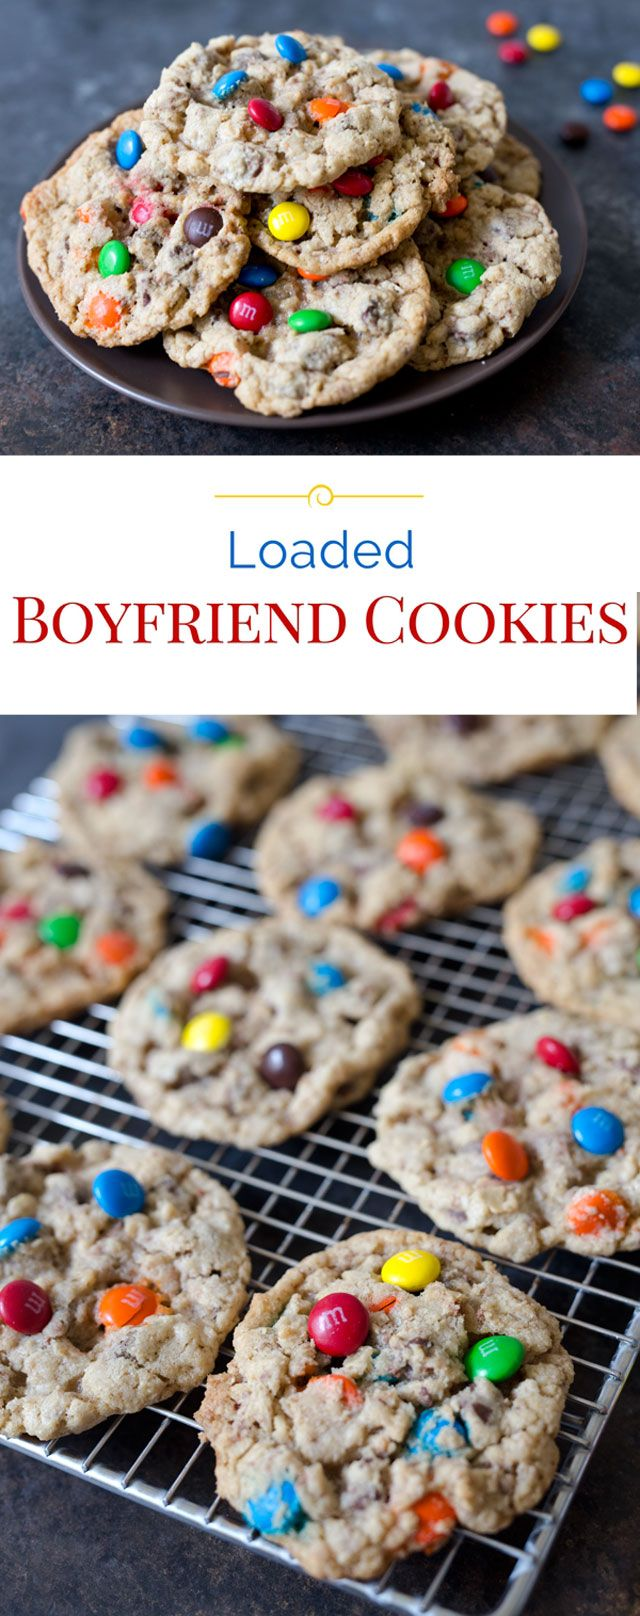 These colorful Boyfriend Cookies are loaded with three kinds of chocolate and good for you crushed oatmeal.